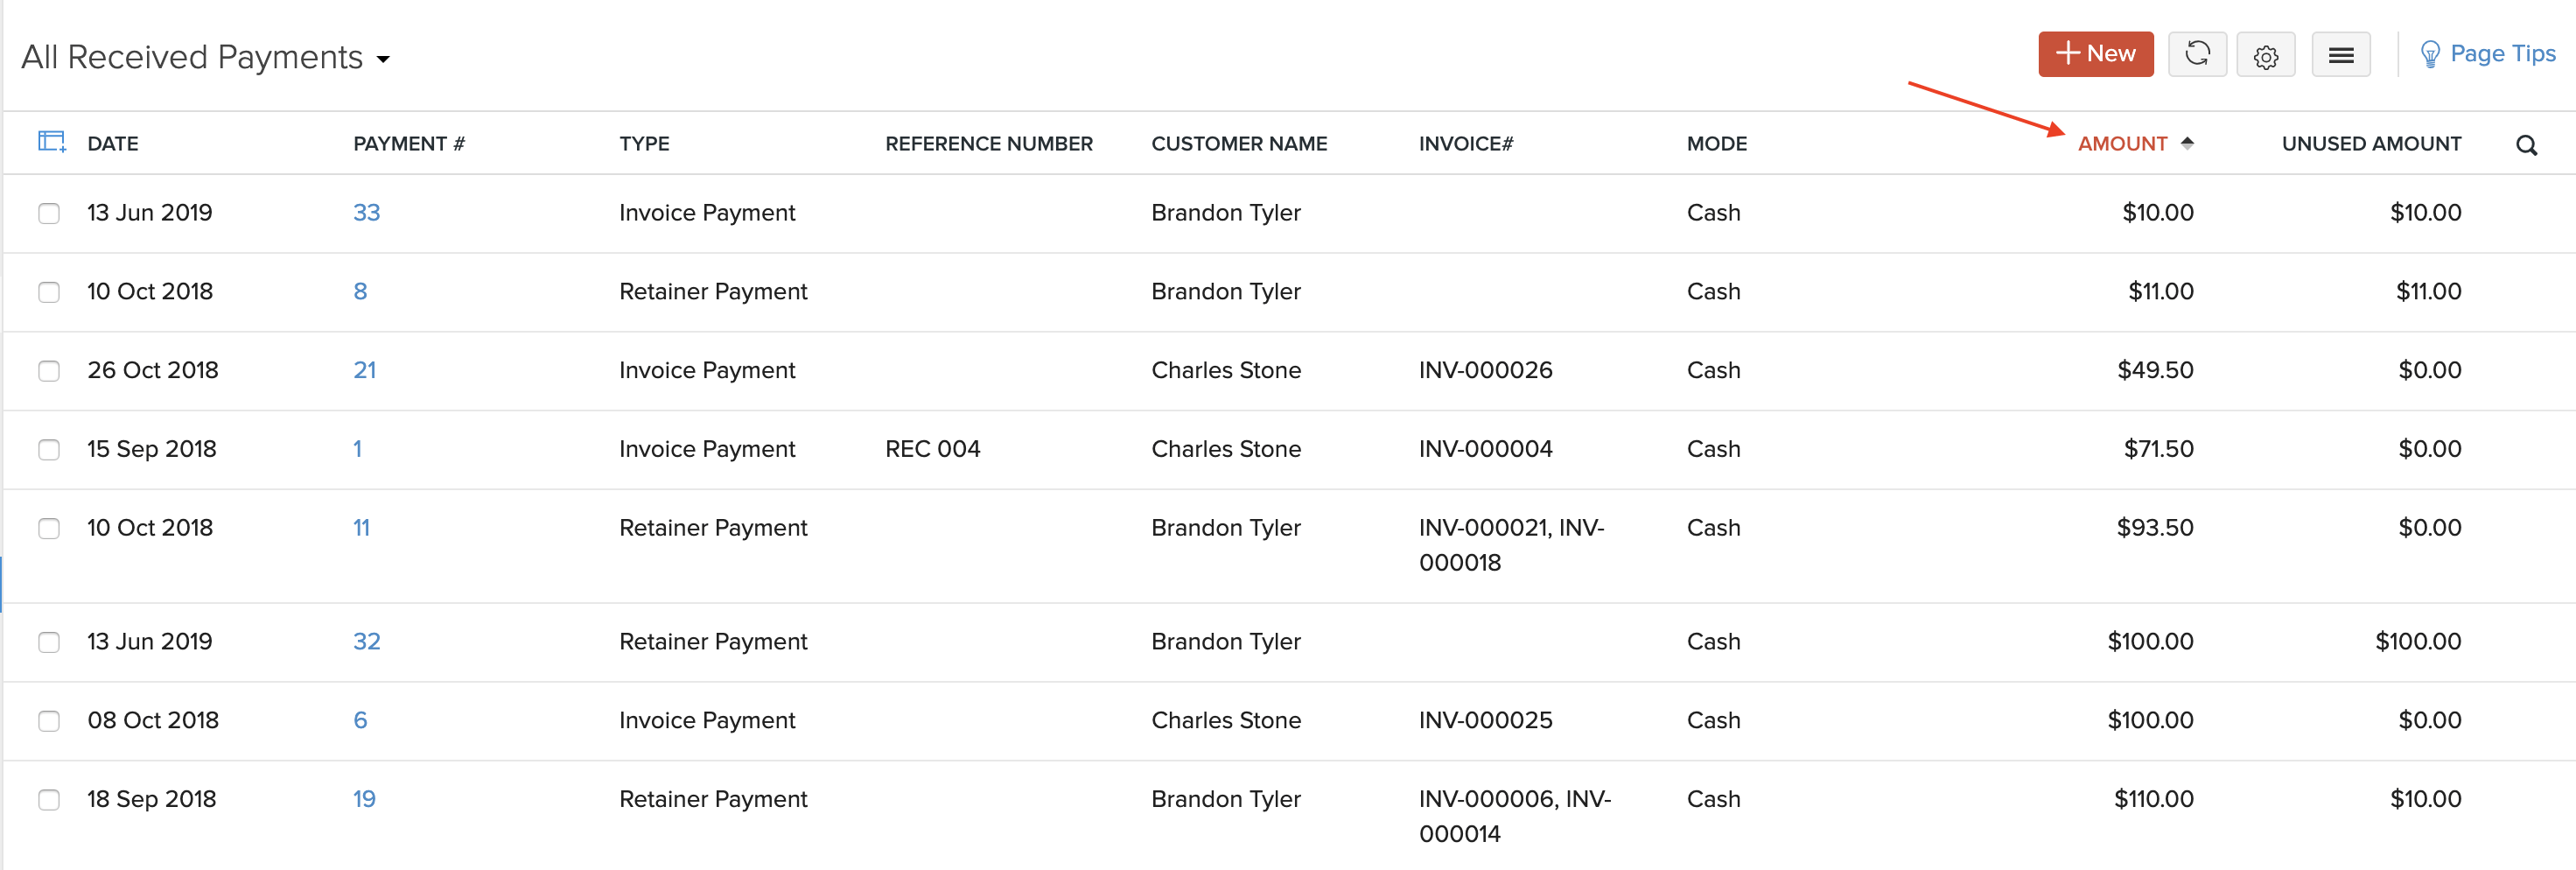 Sort Payments Received